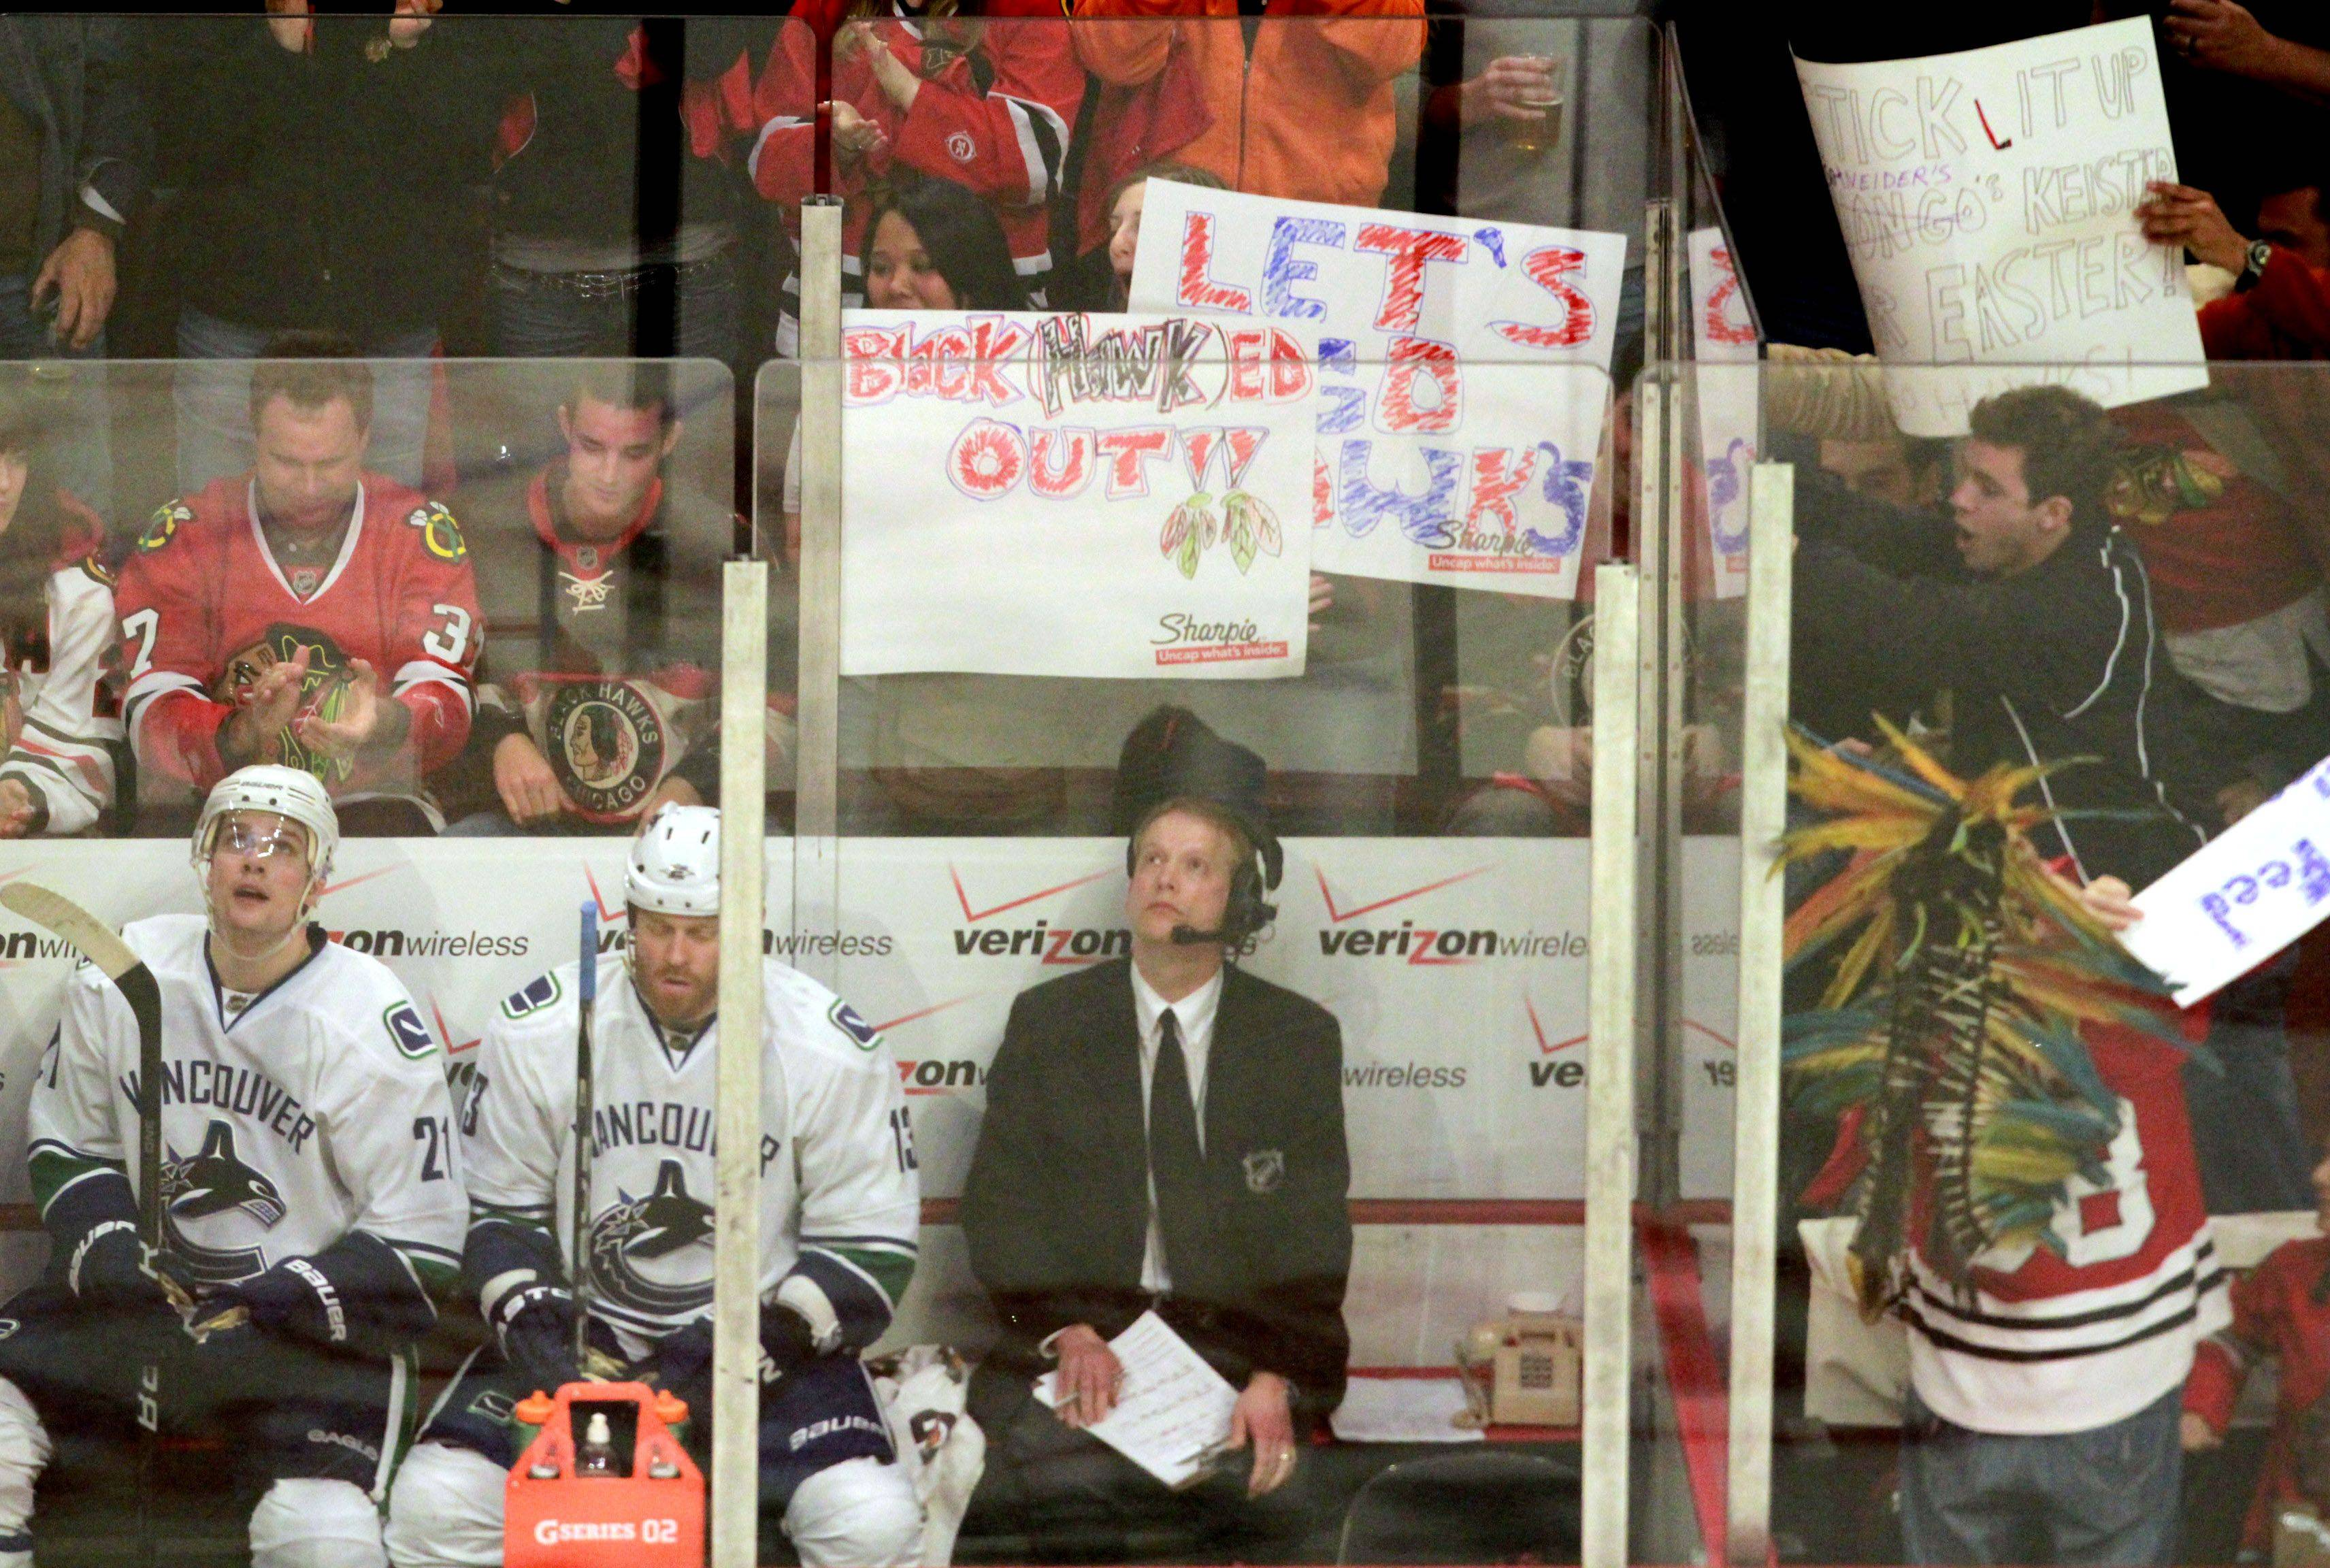 Chicago Blackhawks fans hold up signs with two Vancouver Canucks players in the penalty box in game 6 of the Stanley Cup quarterfinals at the United Center in Chicago on Sunday.